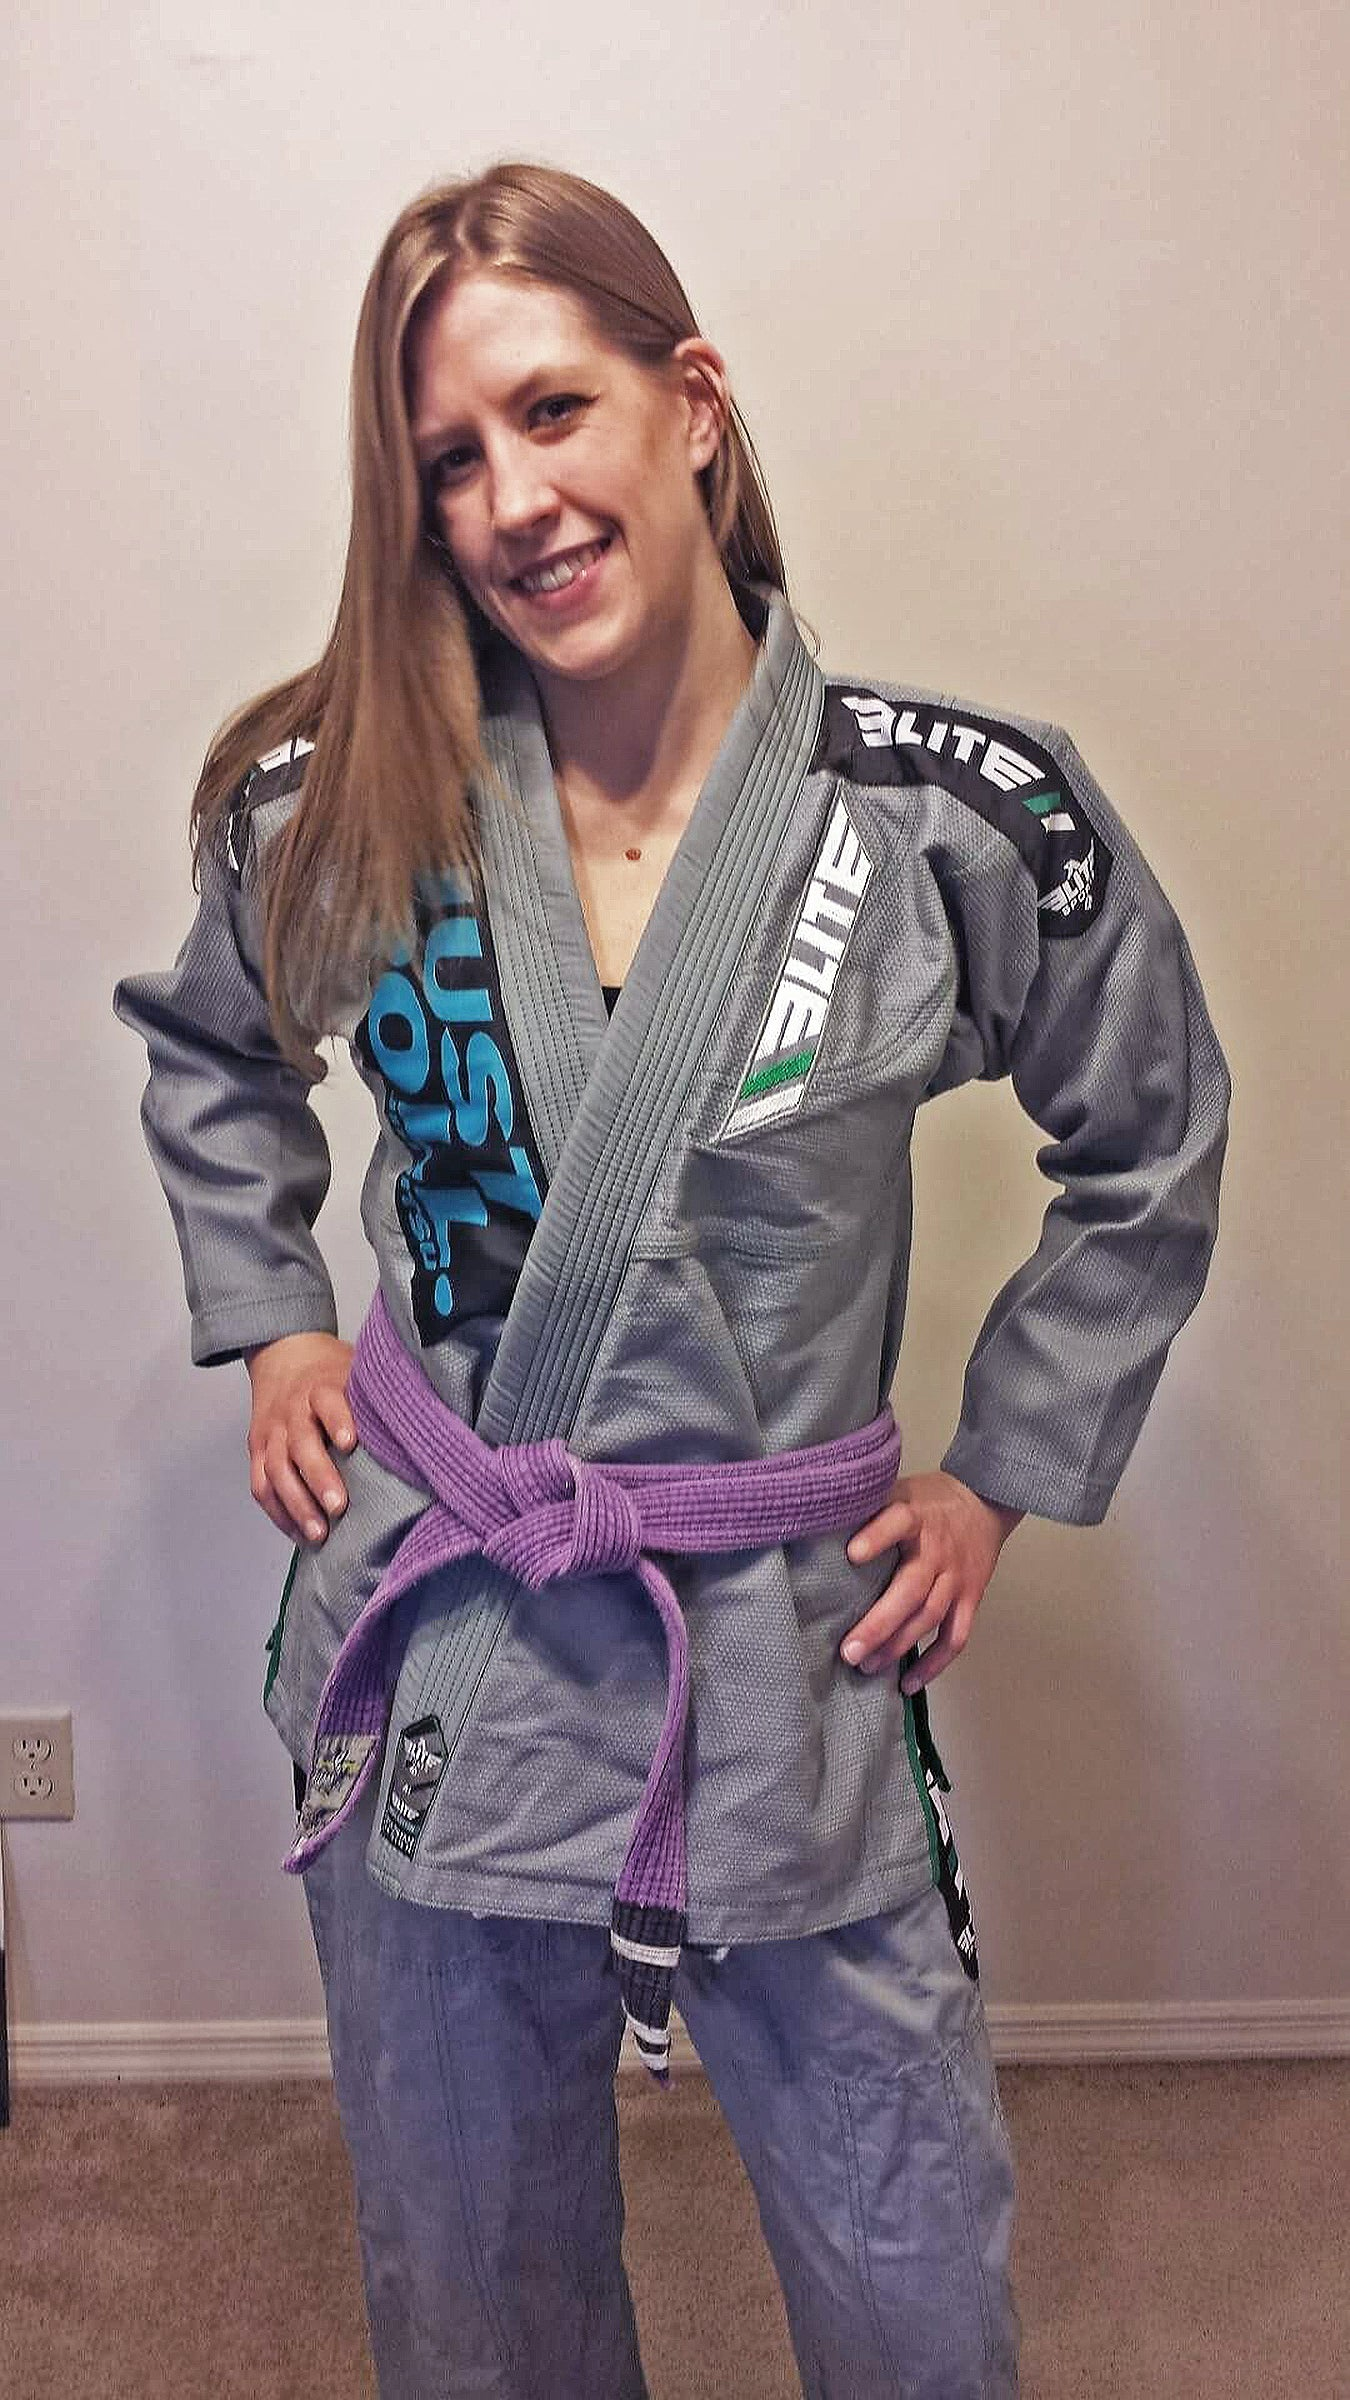 Elite Sports Team Elite Bjj Fighter Yves Nicole Christine Sullivan Image1